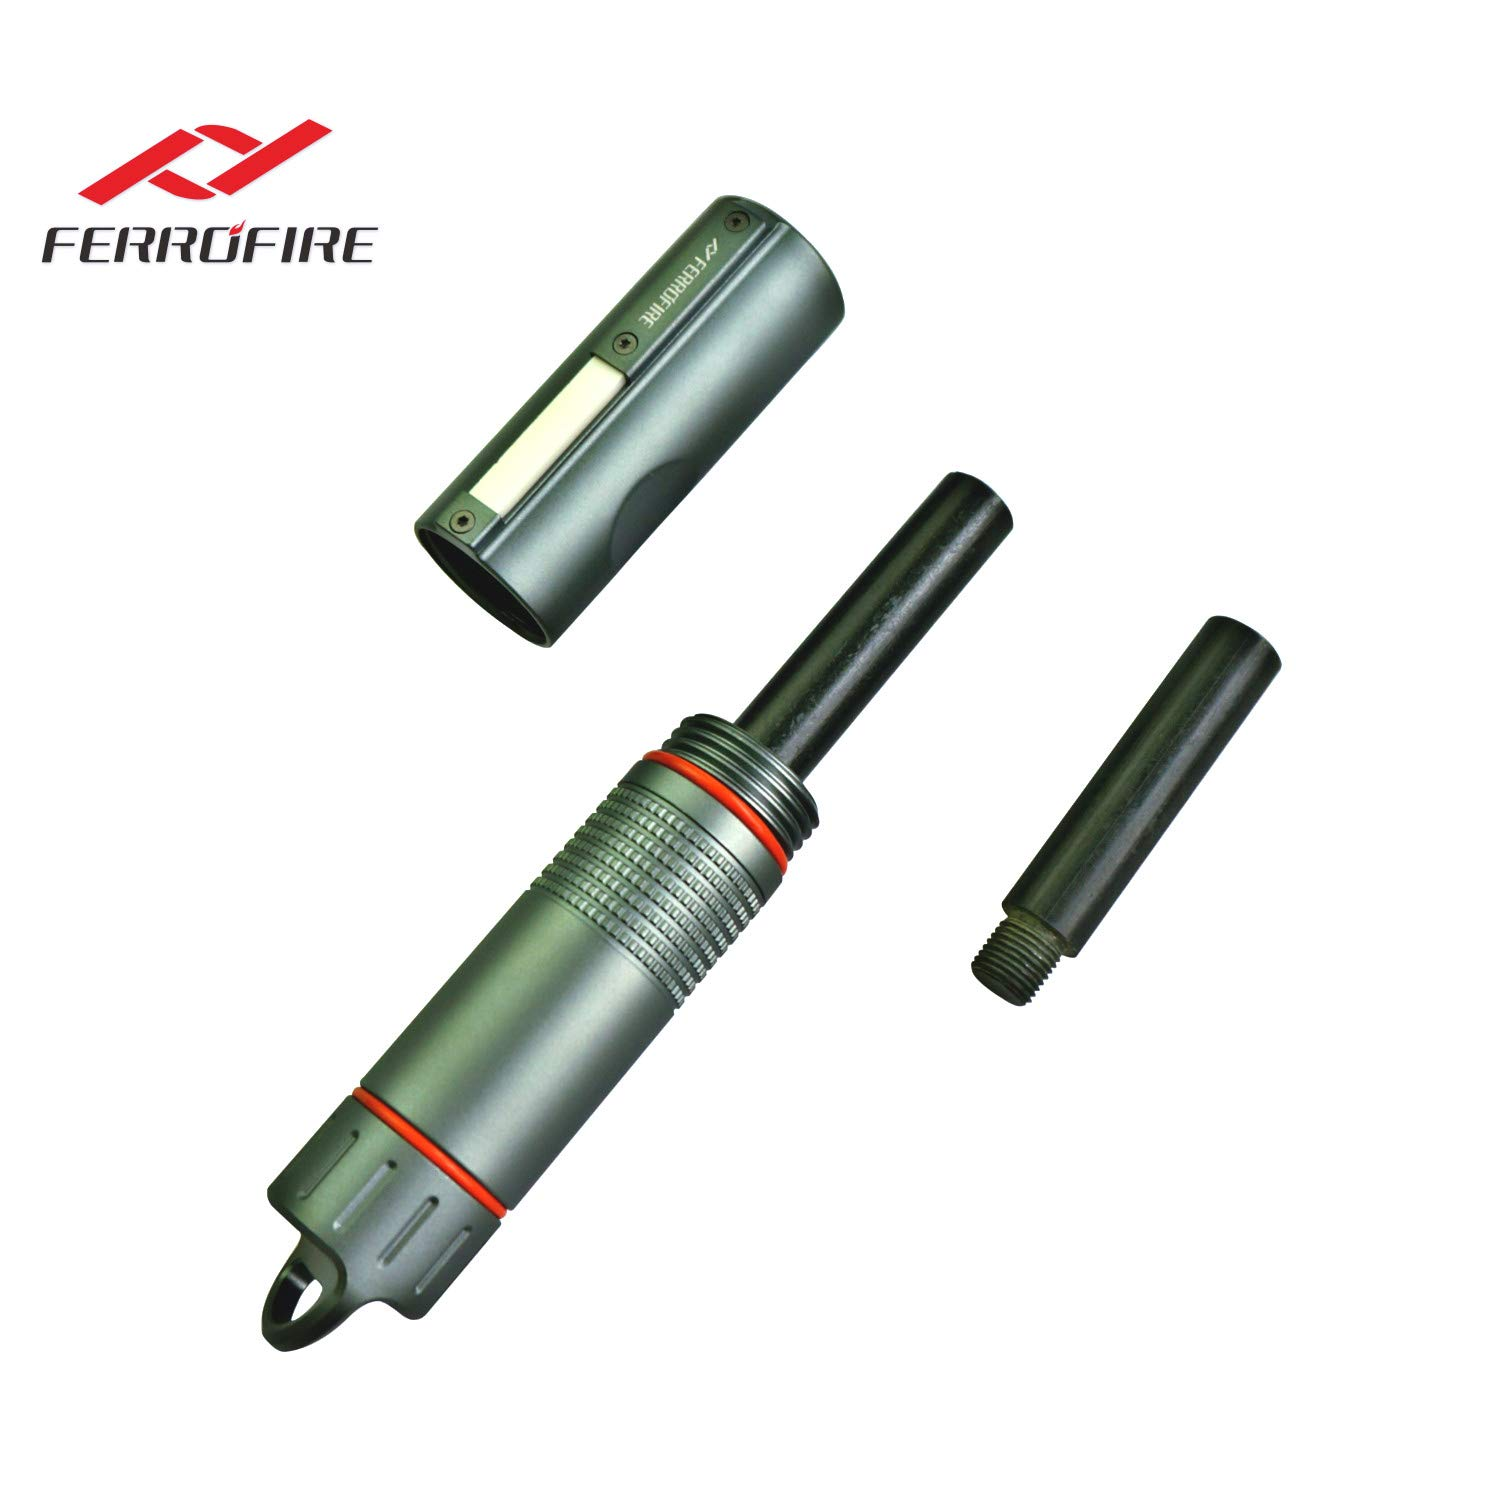 FERROFIRE Fire Starter XXL (S10E1) 1/2 inch diameter replaceable ferro rod + 1 standby rod, compact package. Truly for All Weathers and A Lifetime of Use, Waterproof Capsule, Built-in Striker, Compass by FERROFIRE